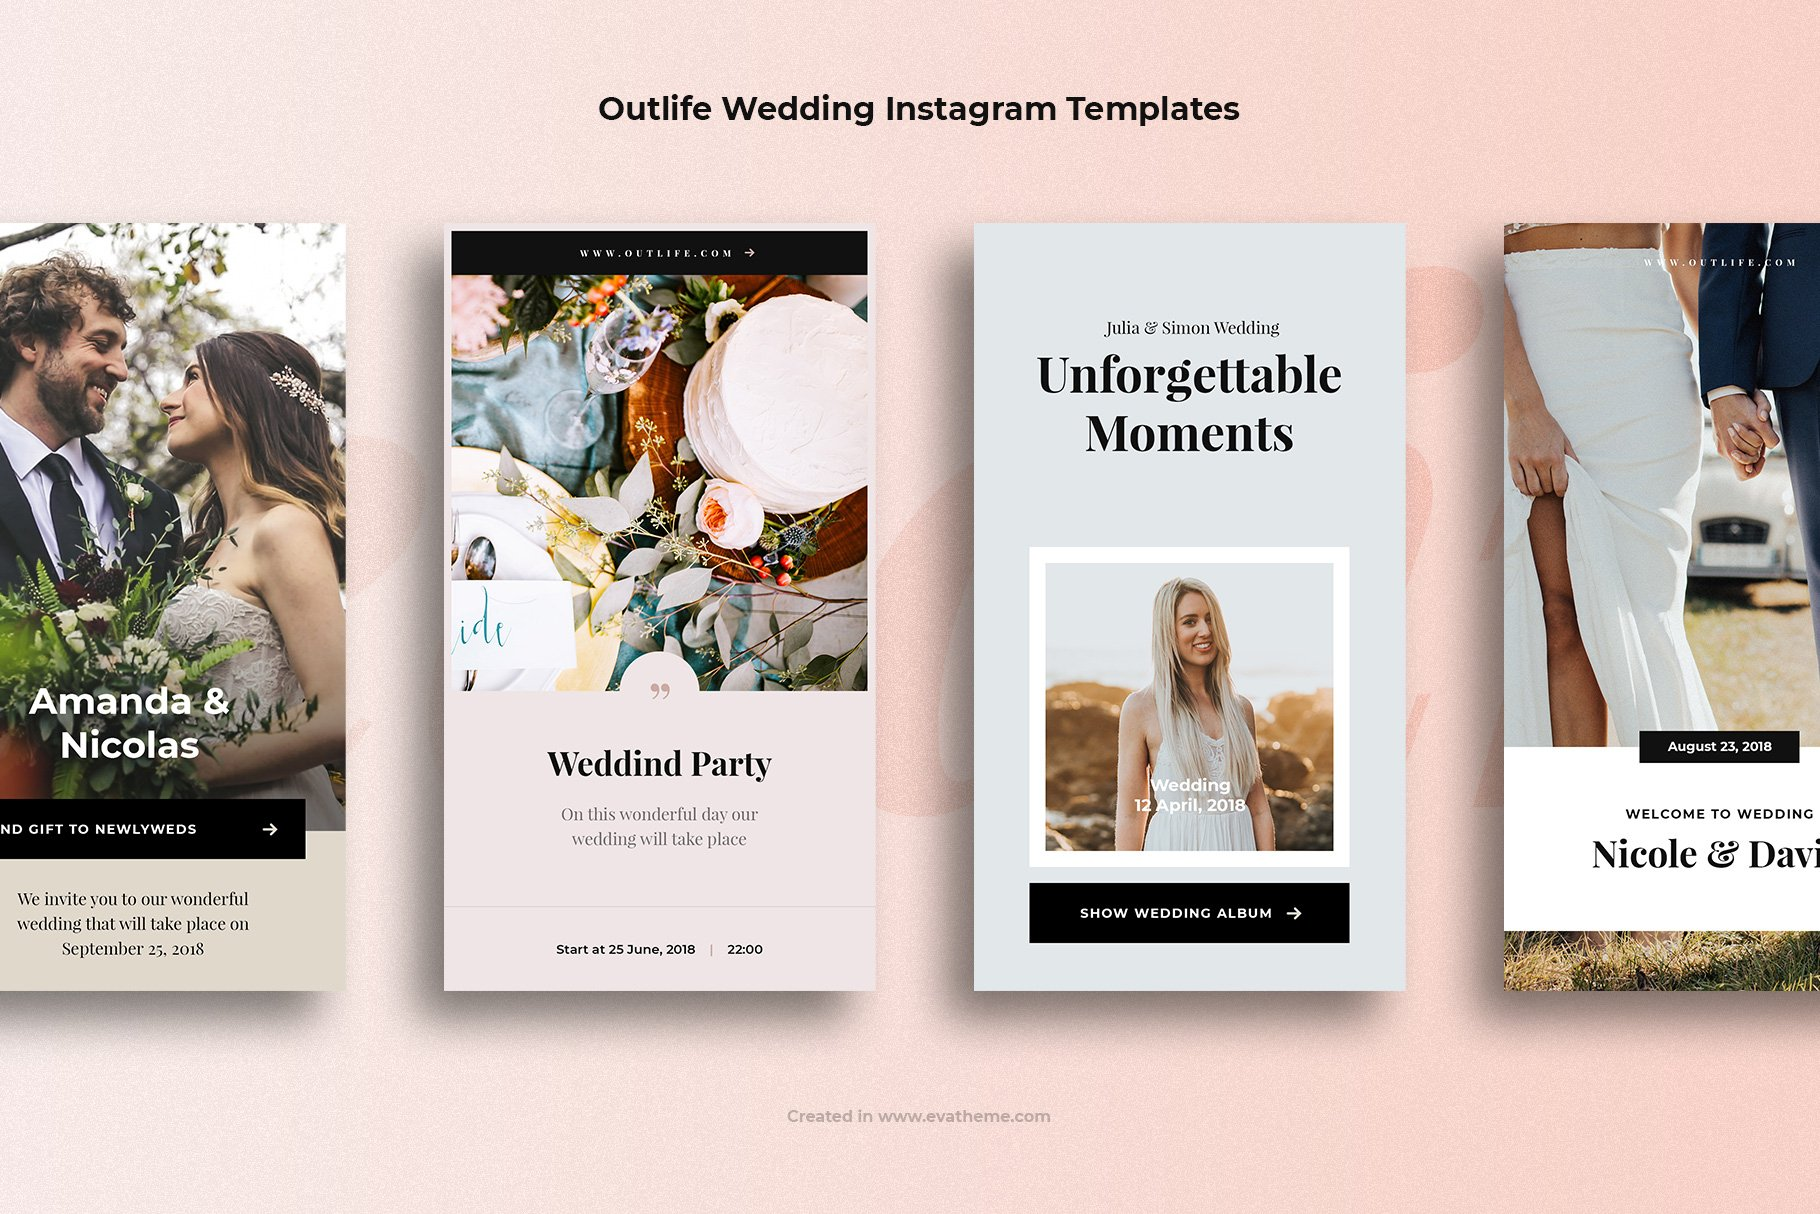 Outlife Wedding Instagram Templates example image 2